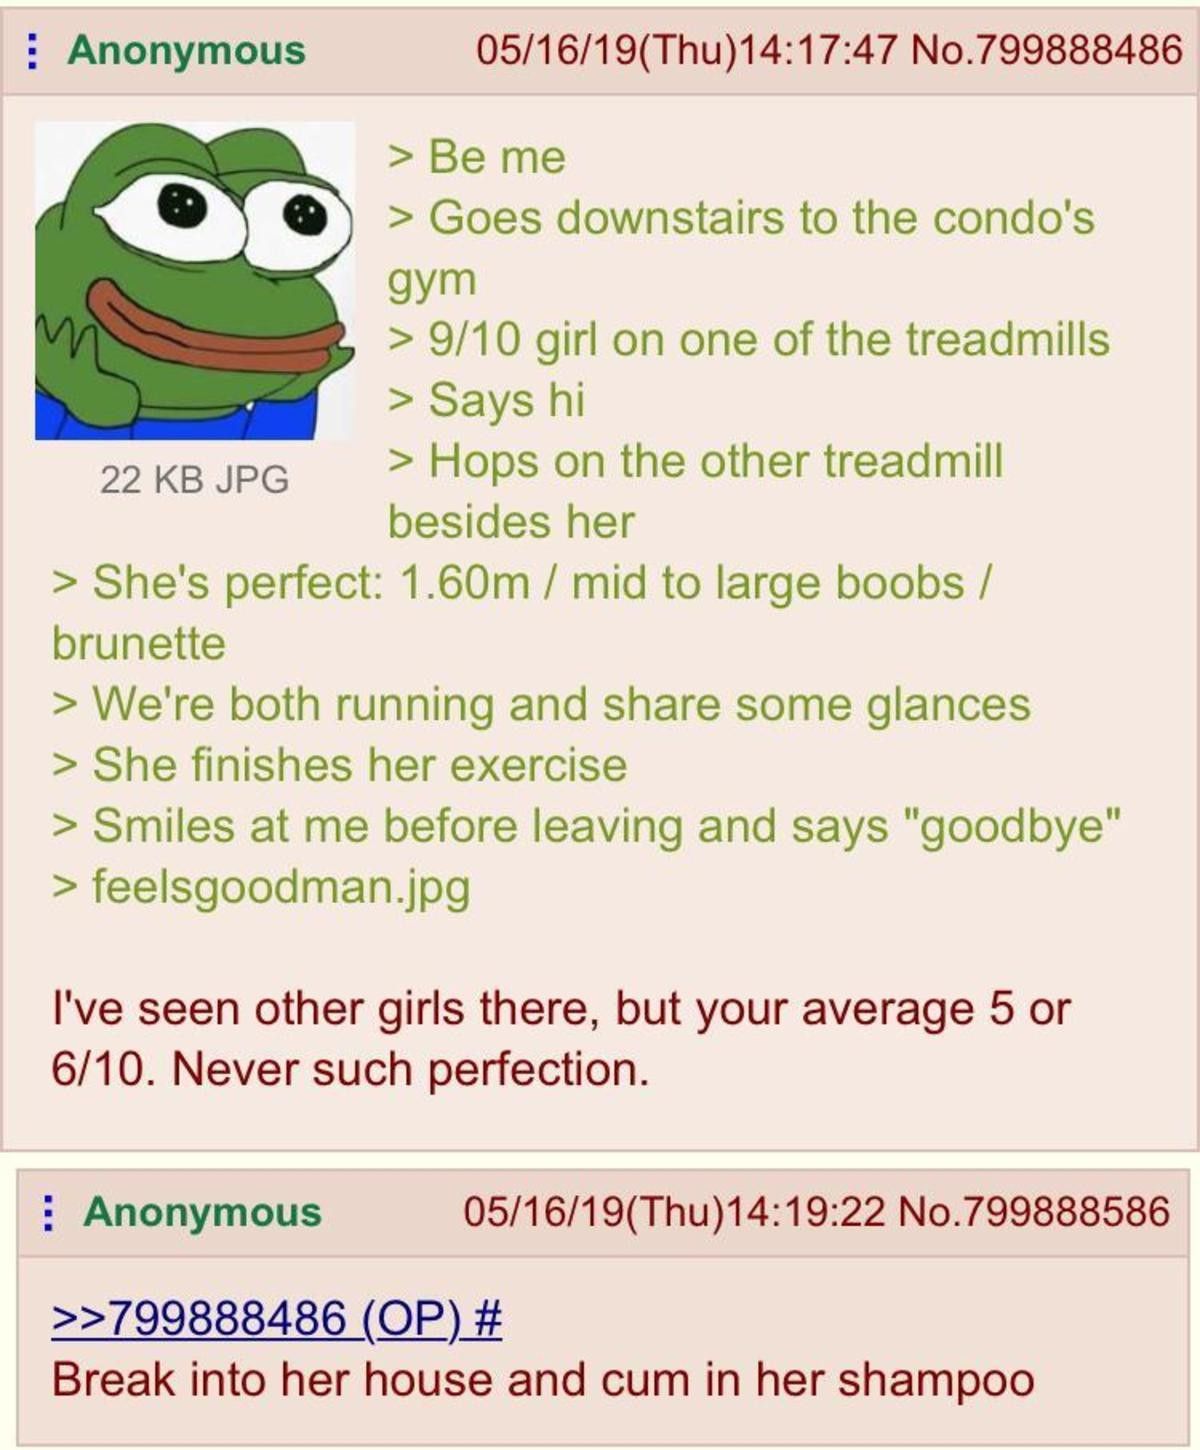 Anon meets girl. .. i just like appreciating beauty. i dont want a relationship or anything but when i see a good looking girl, hell sometimes even a good looking guy who's friendl